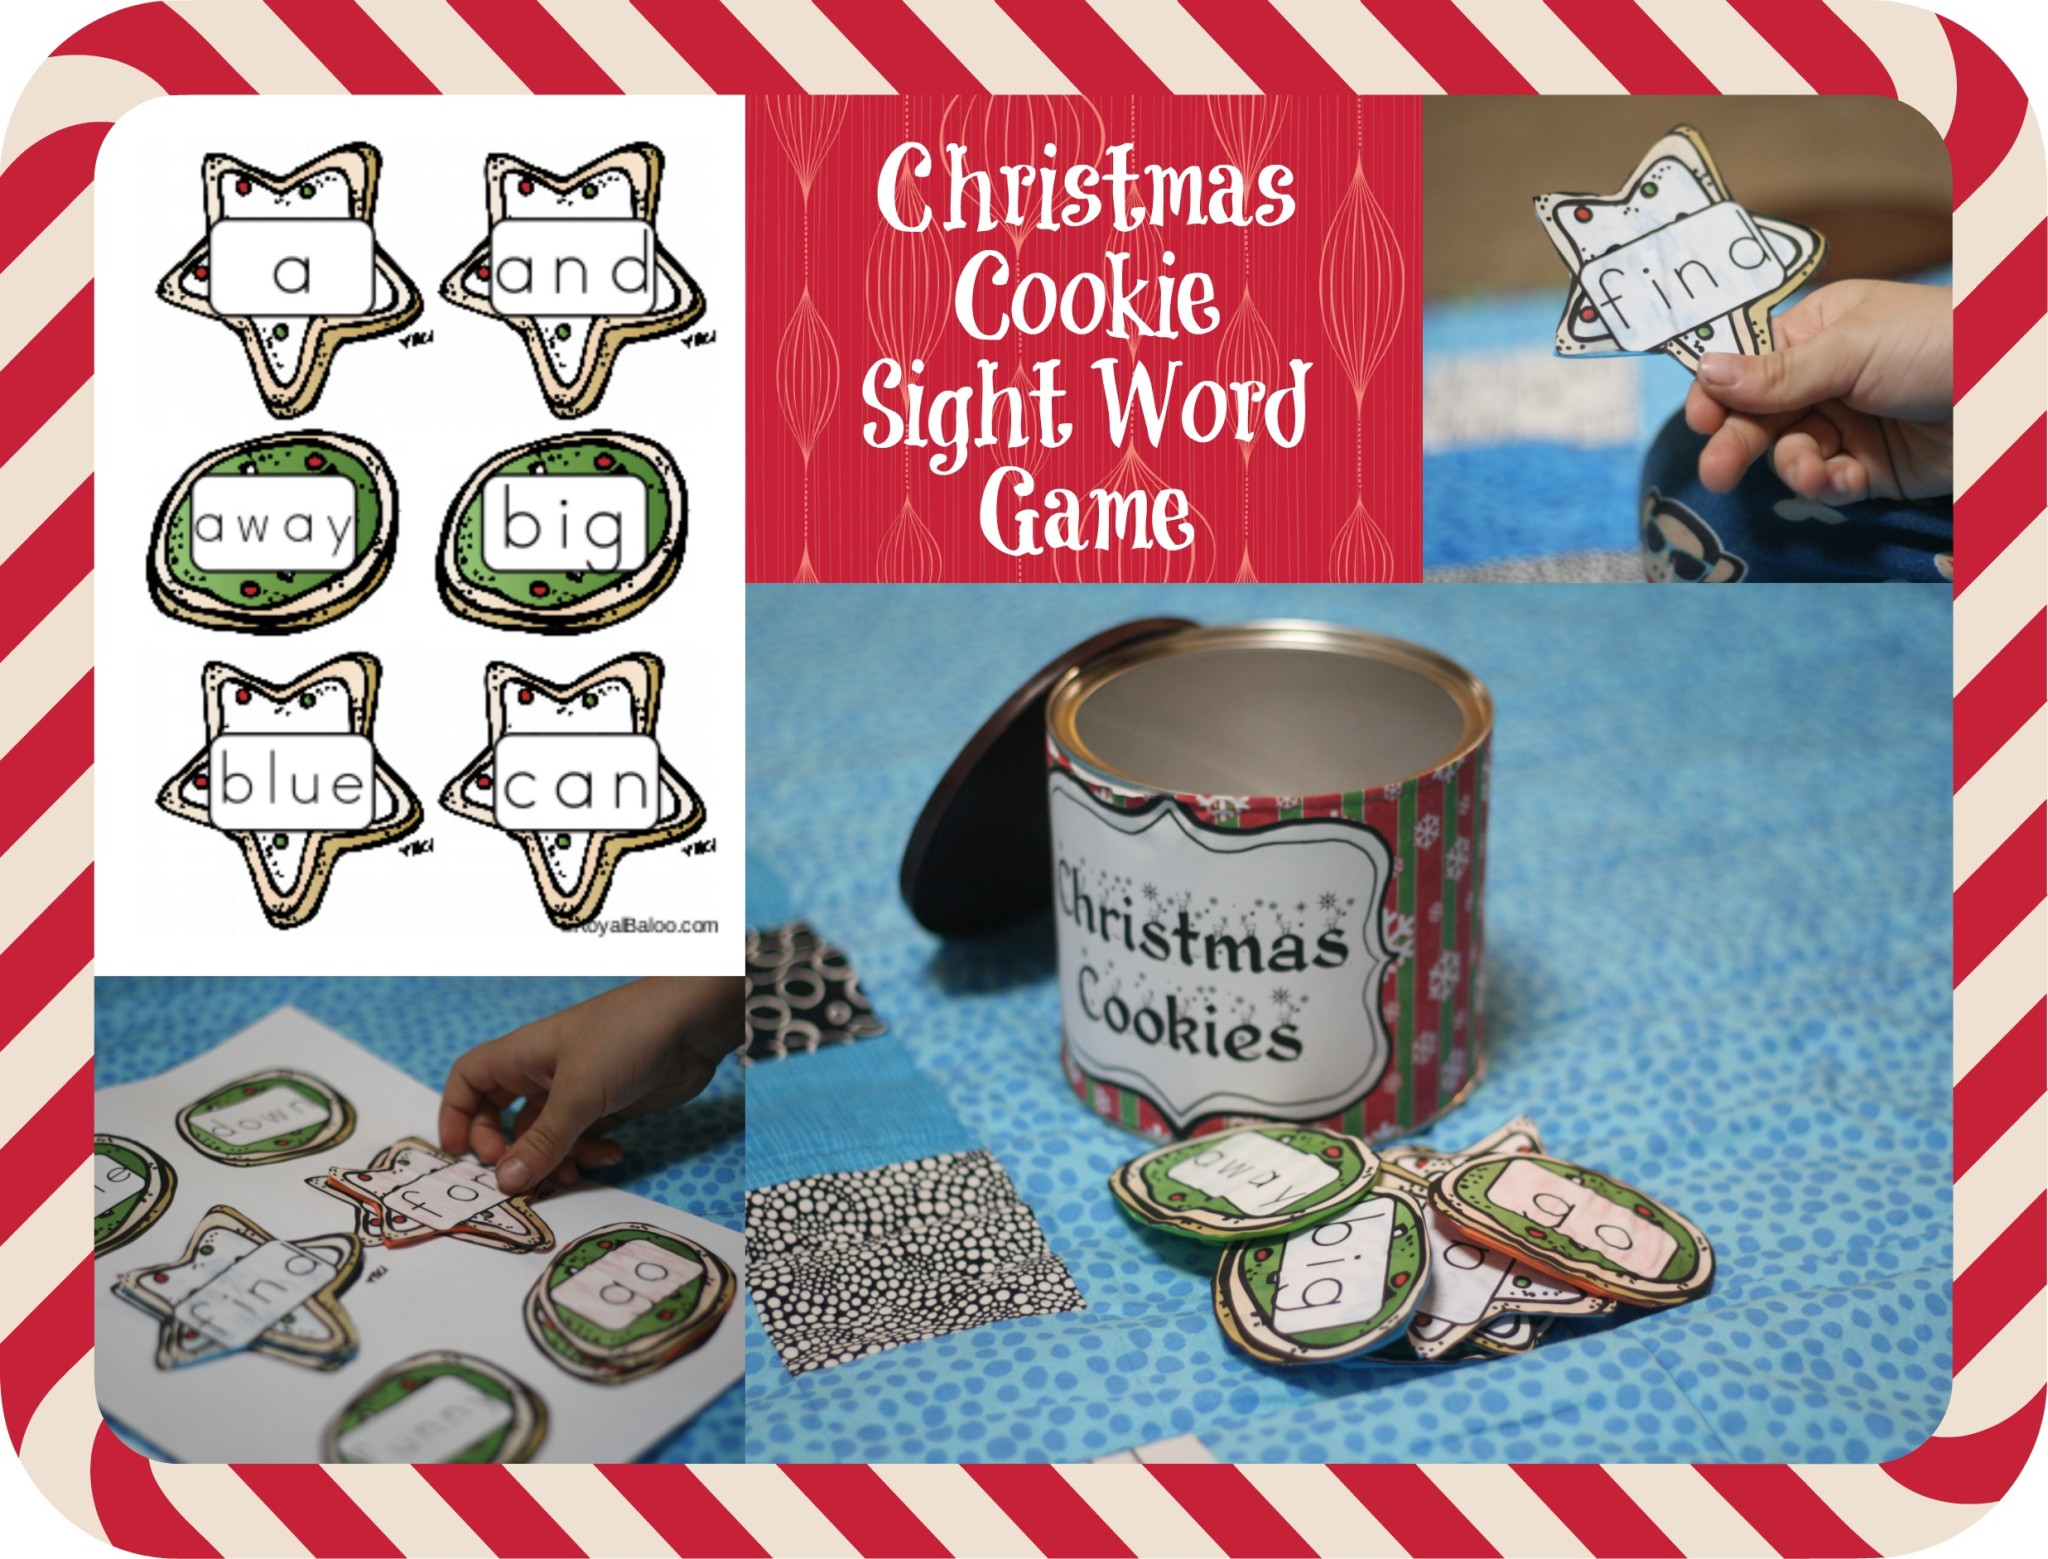 word Word Sight match printable sight memory Christmas Game  Cookie